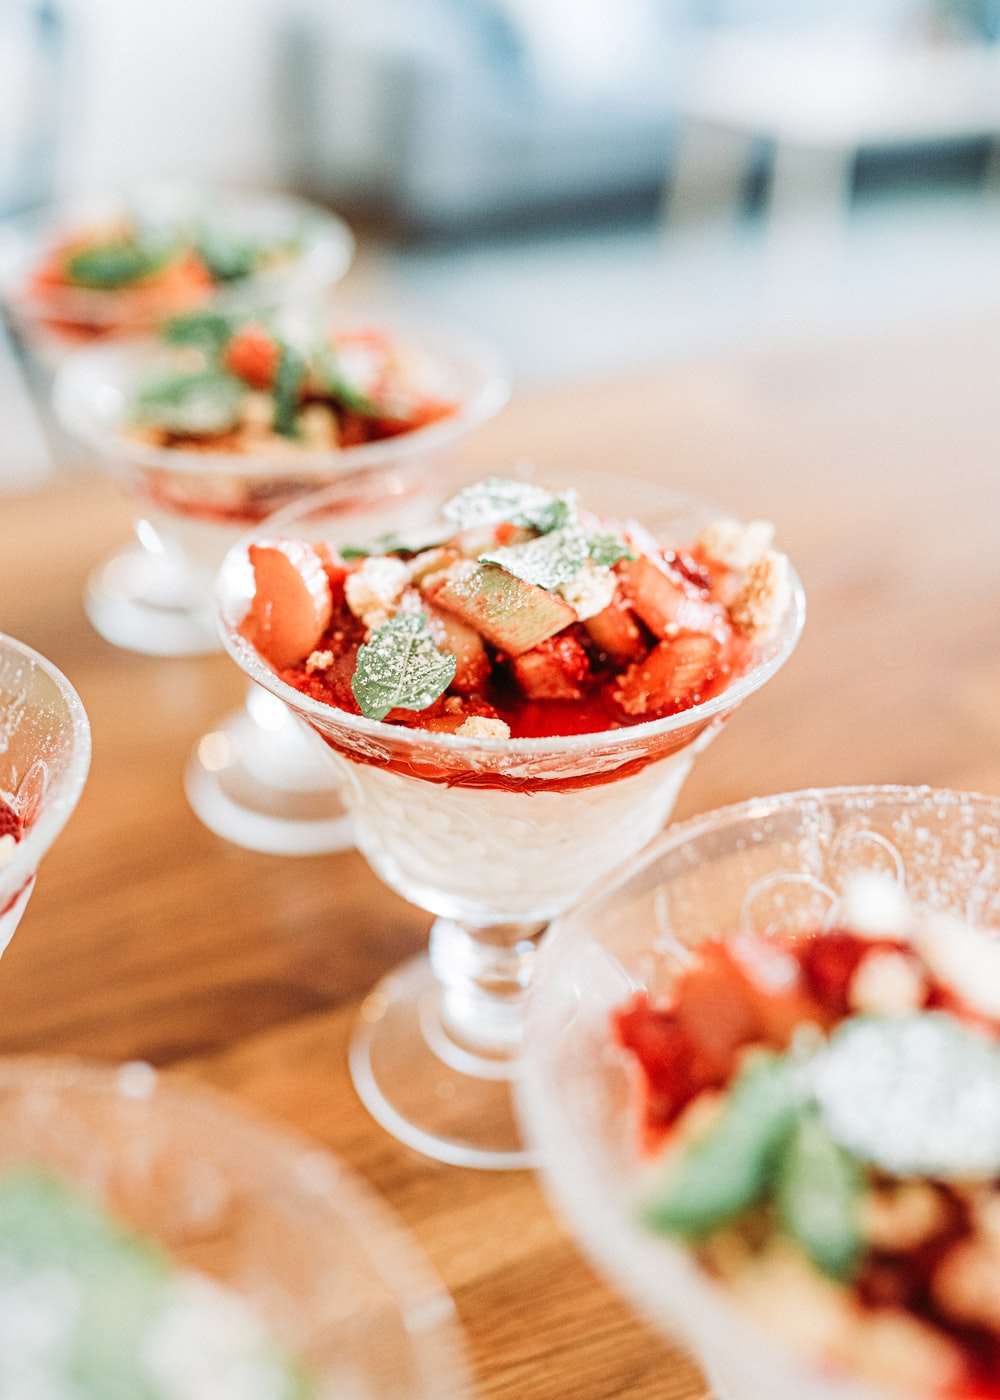 sliced strawberries in clear glass bowl